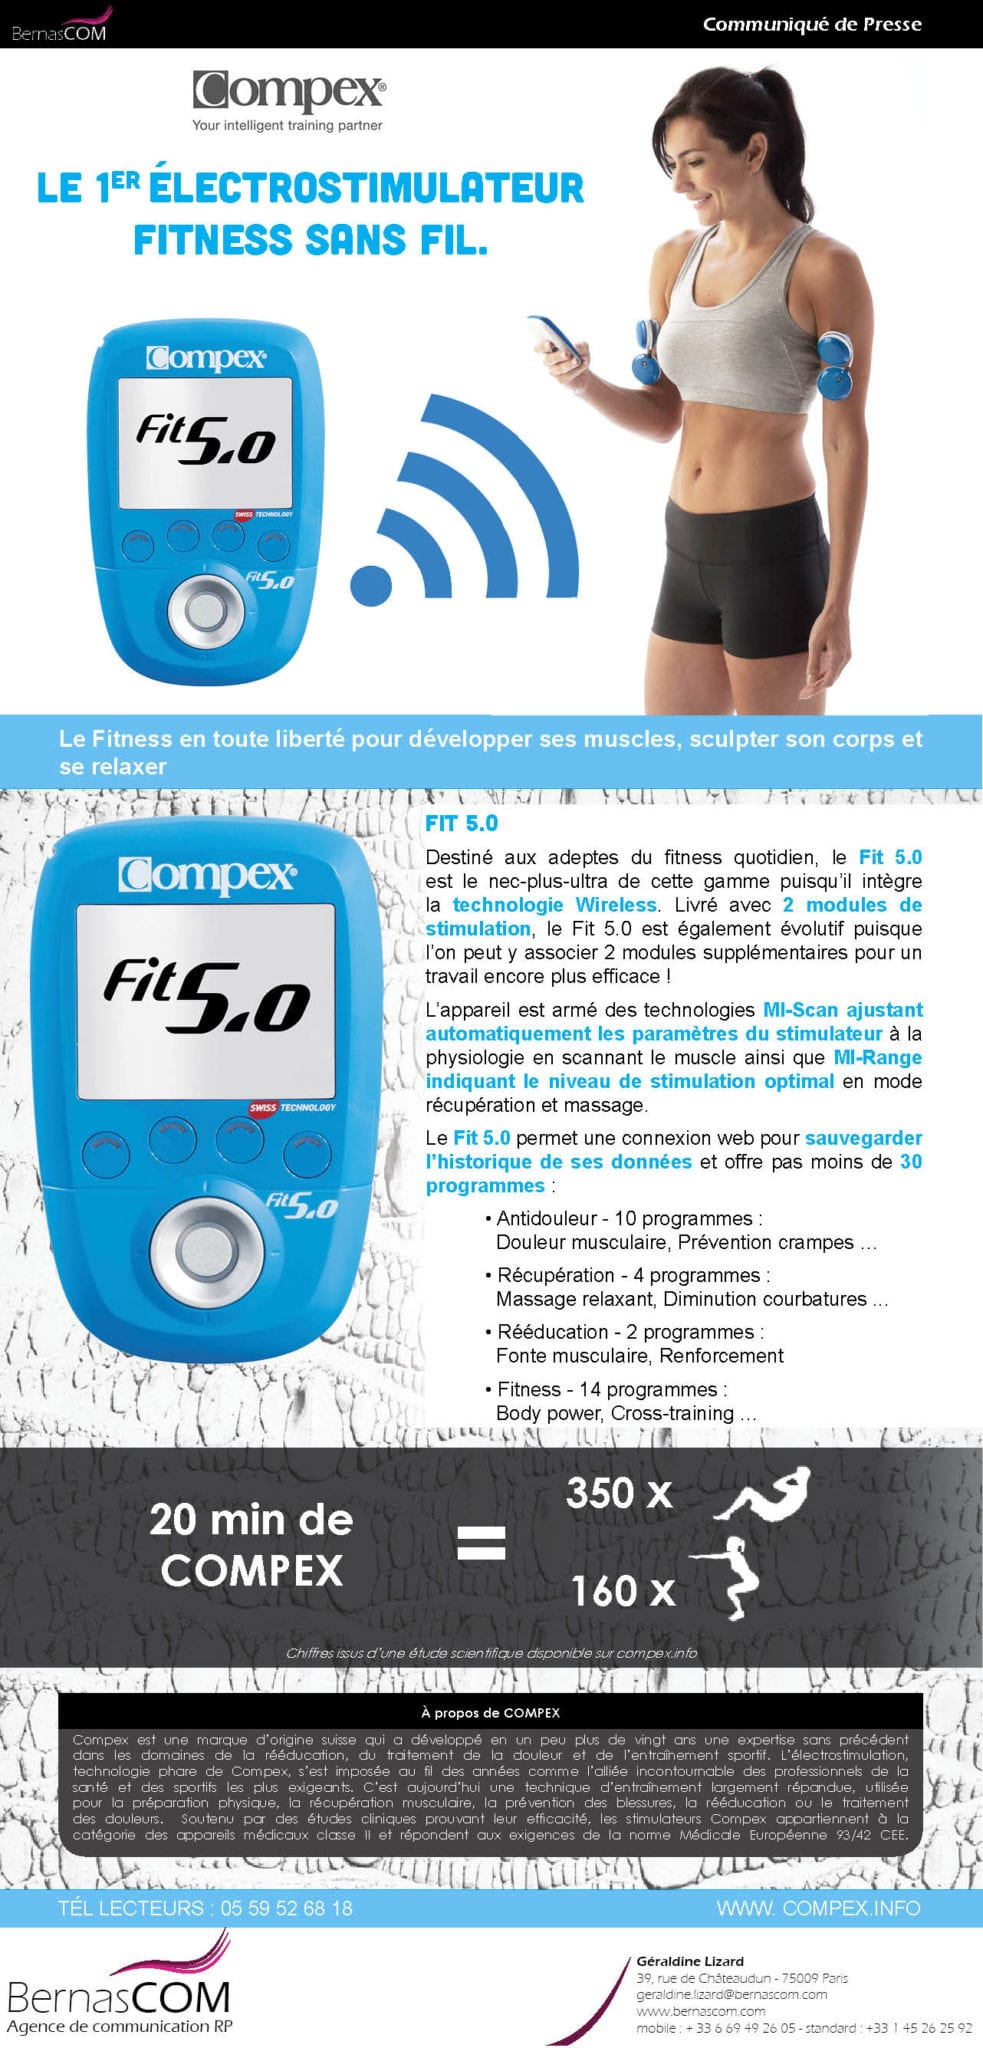 Compex_CP_New-Gamme-Fitness-Wireless